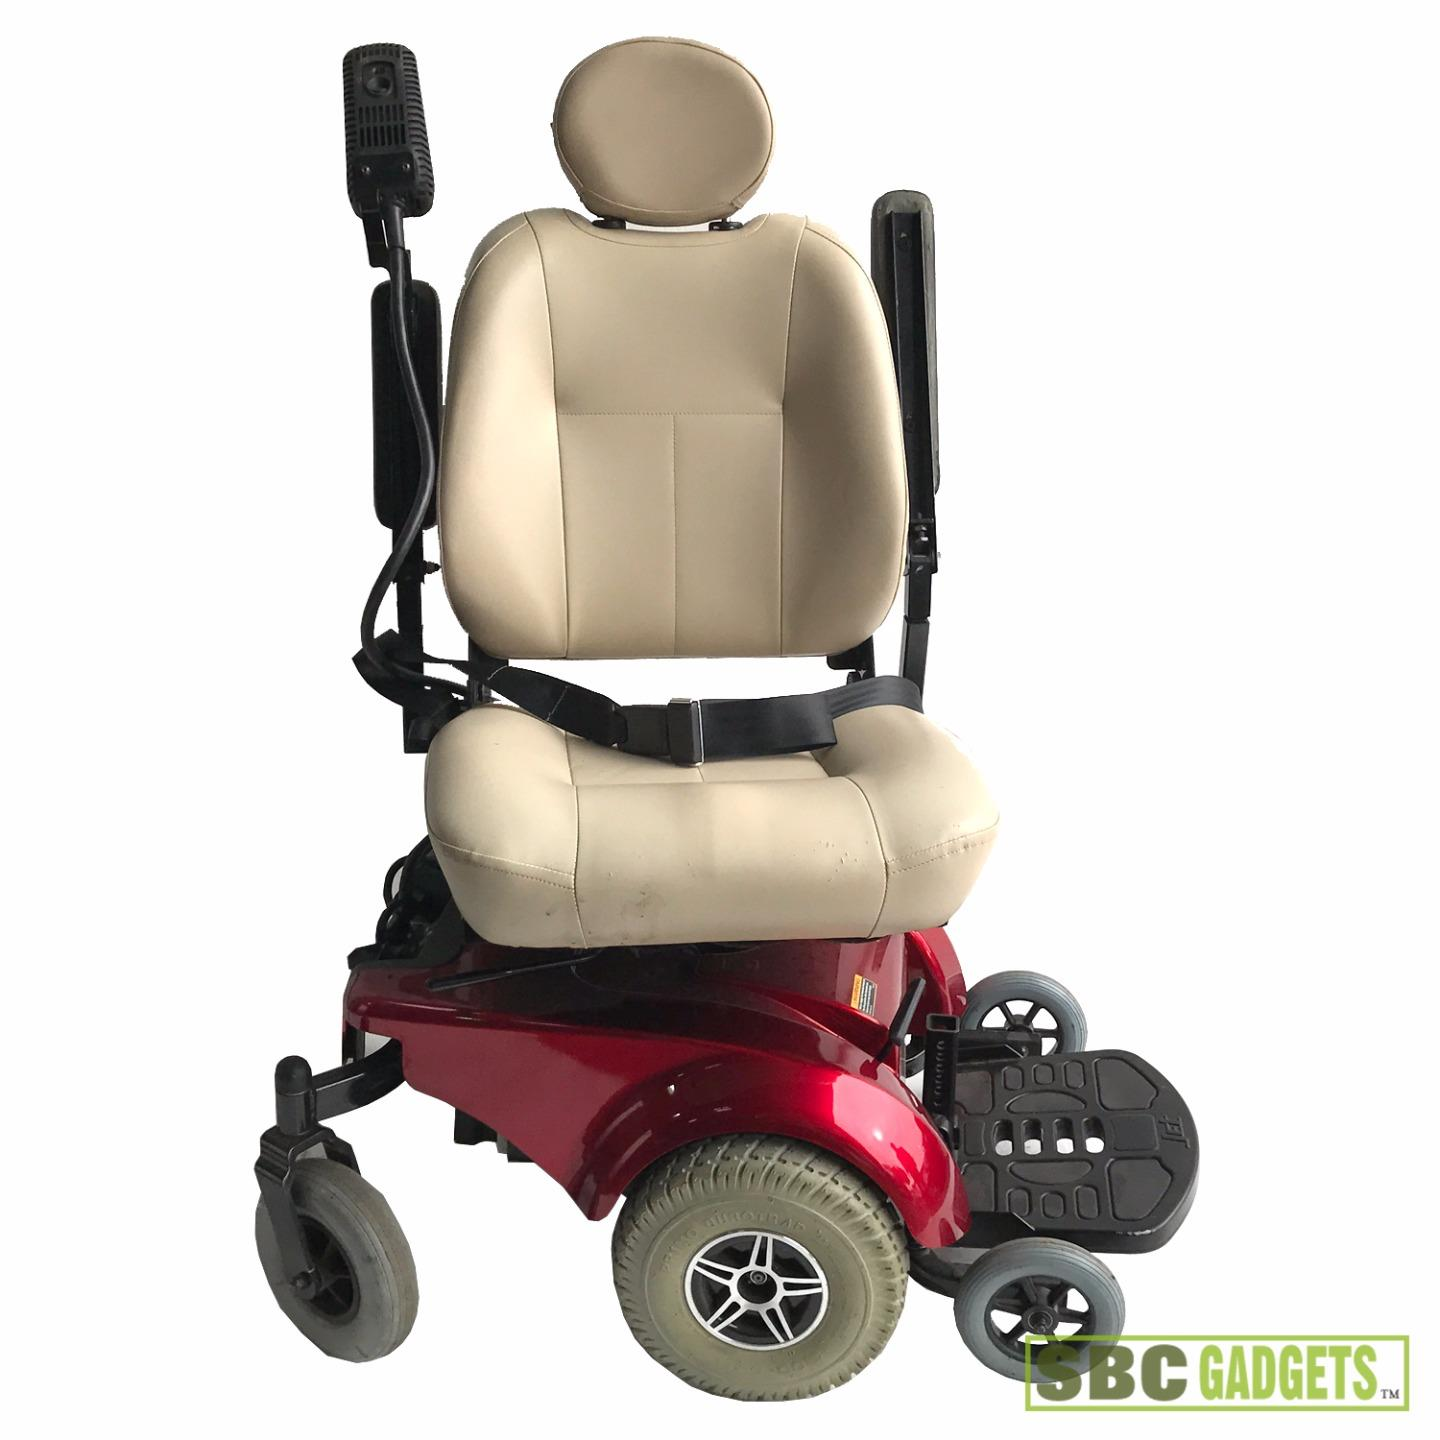 Jet 3 Power Wheelchair : Pride mobility jet ultra electric power wheelchair